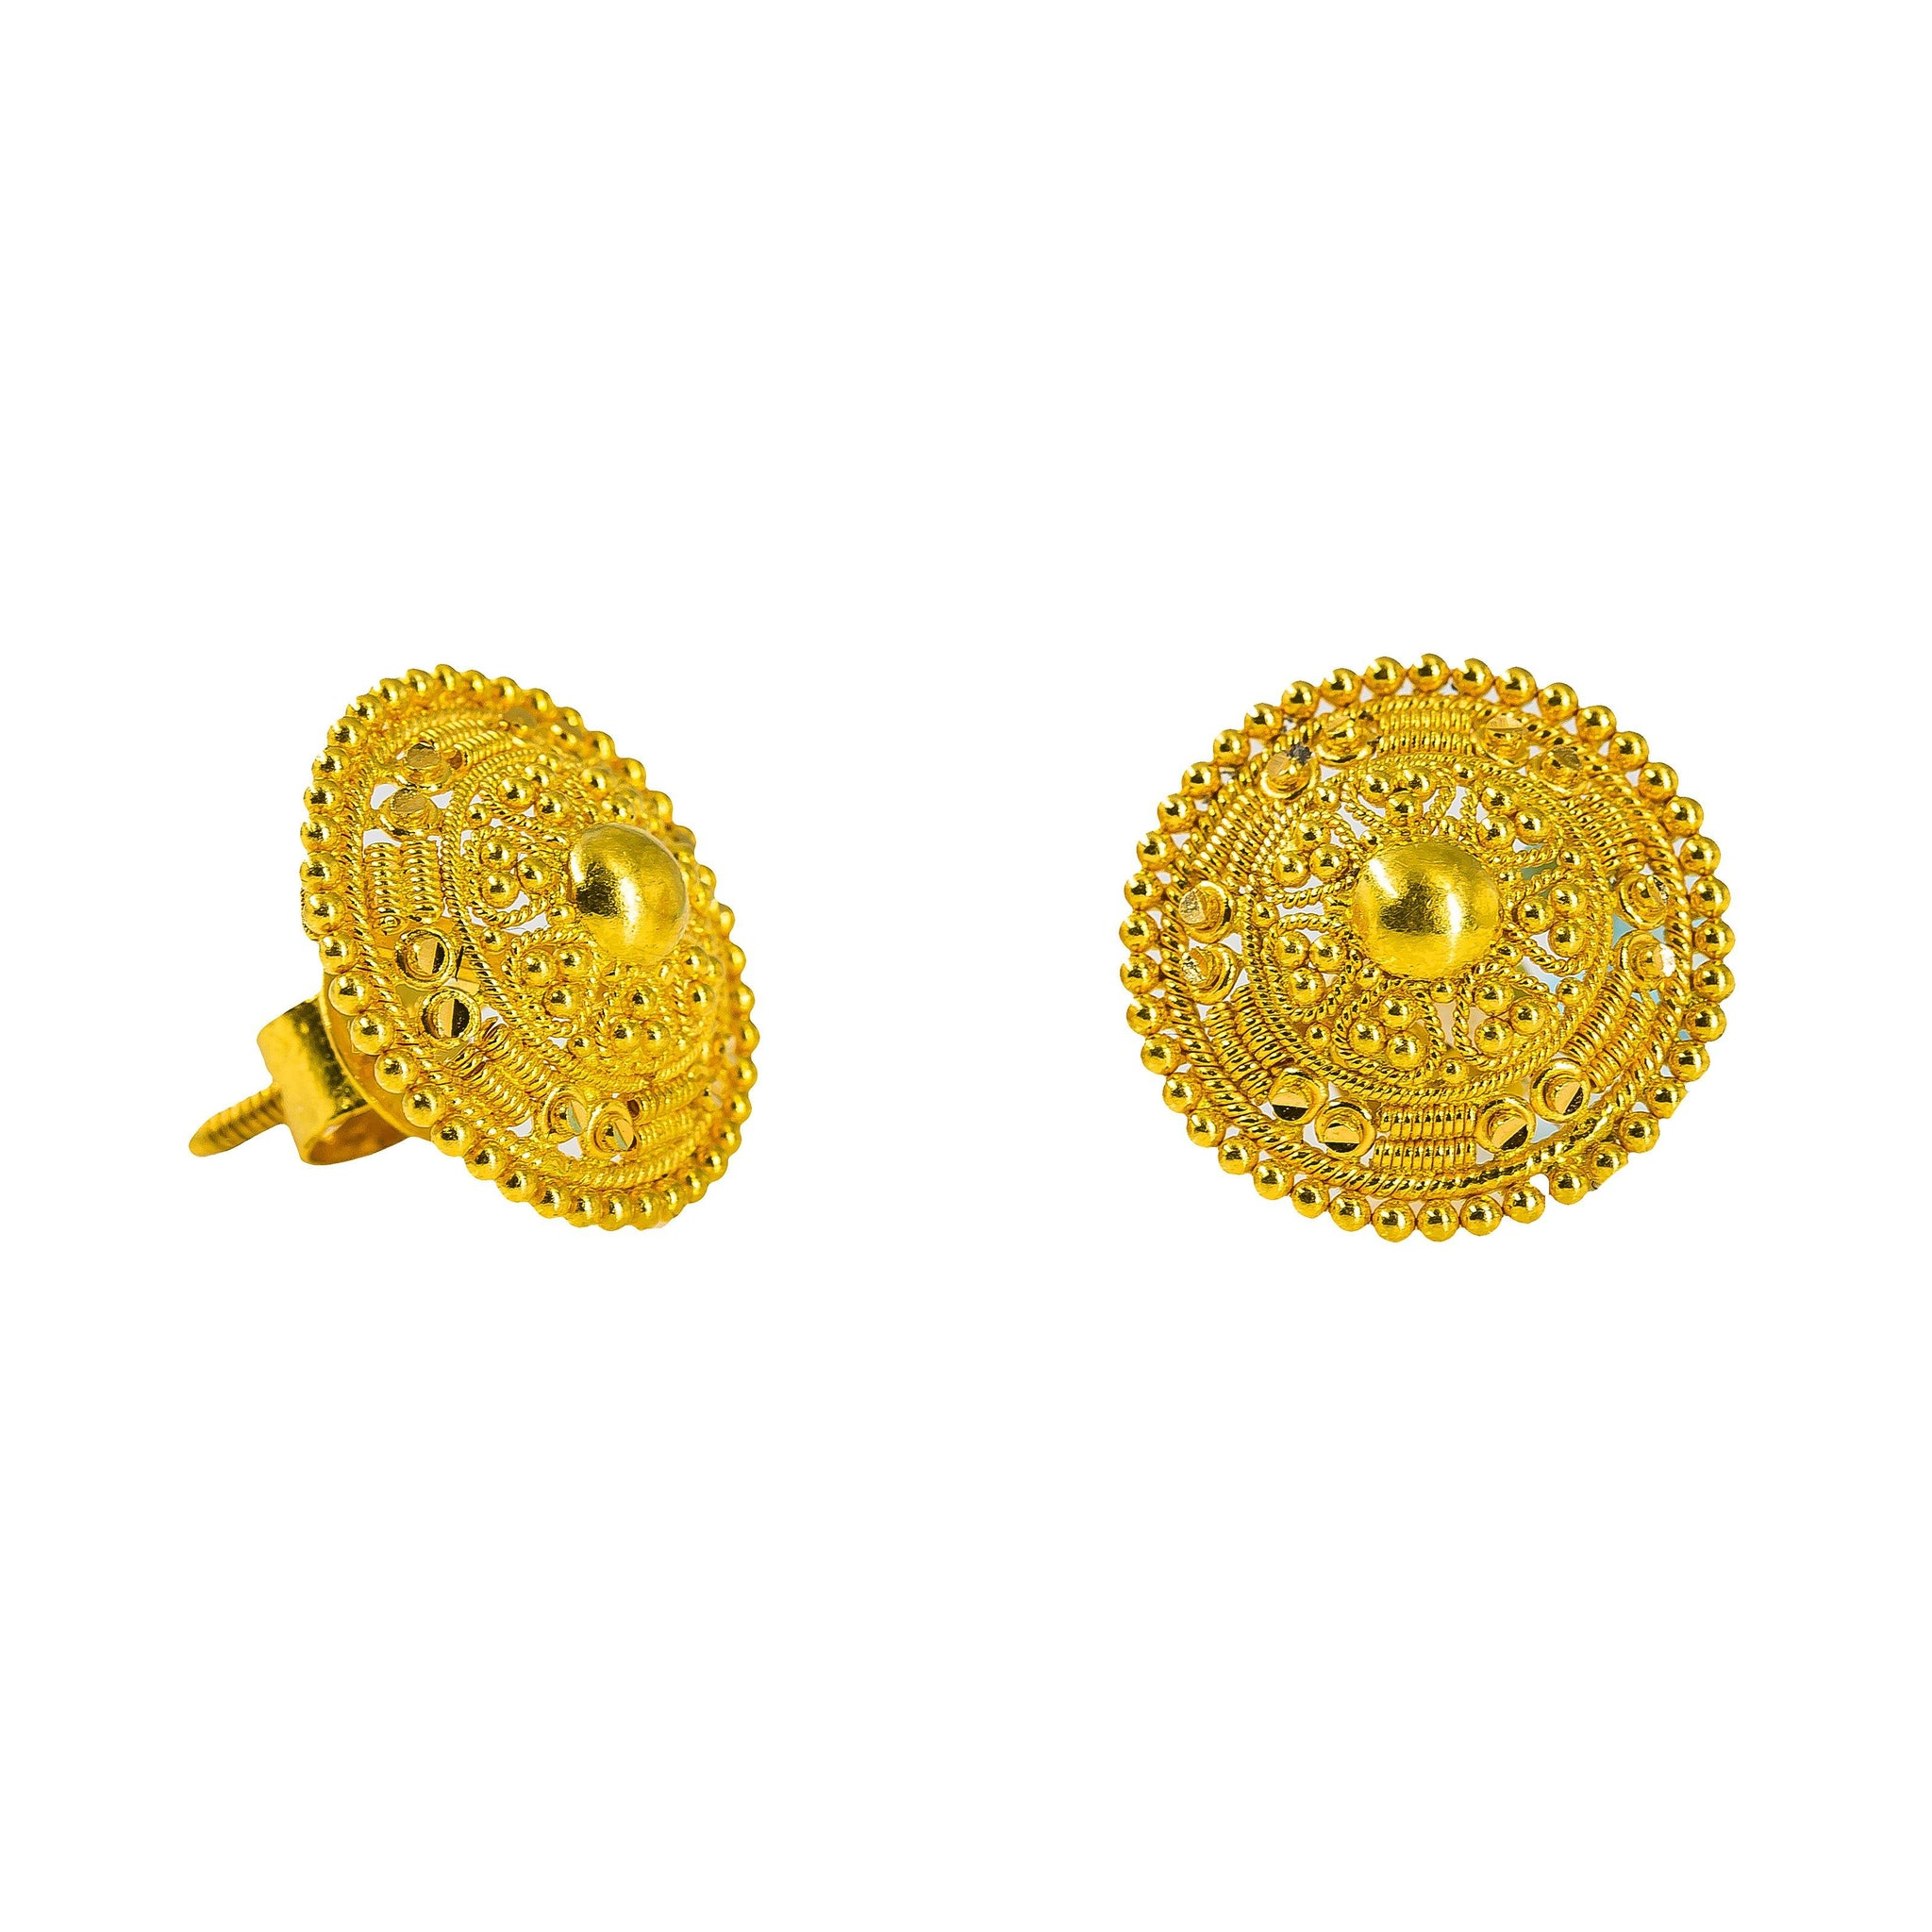 studs amy selected jewelry earrings gold gregg circle large stud products oversized